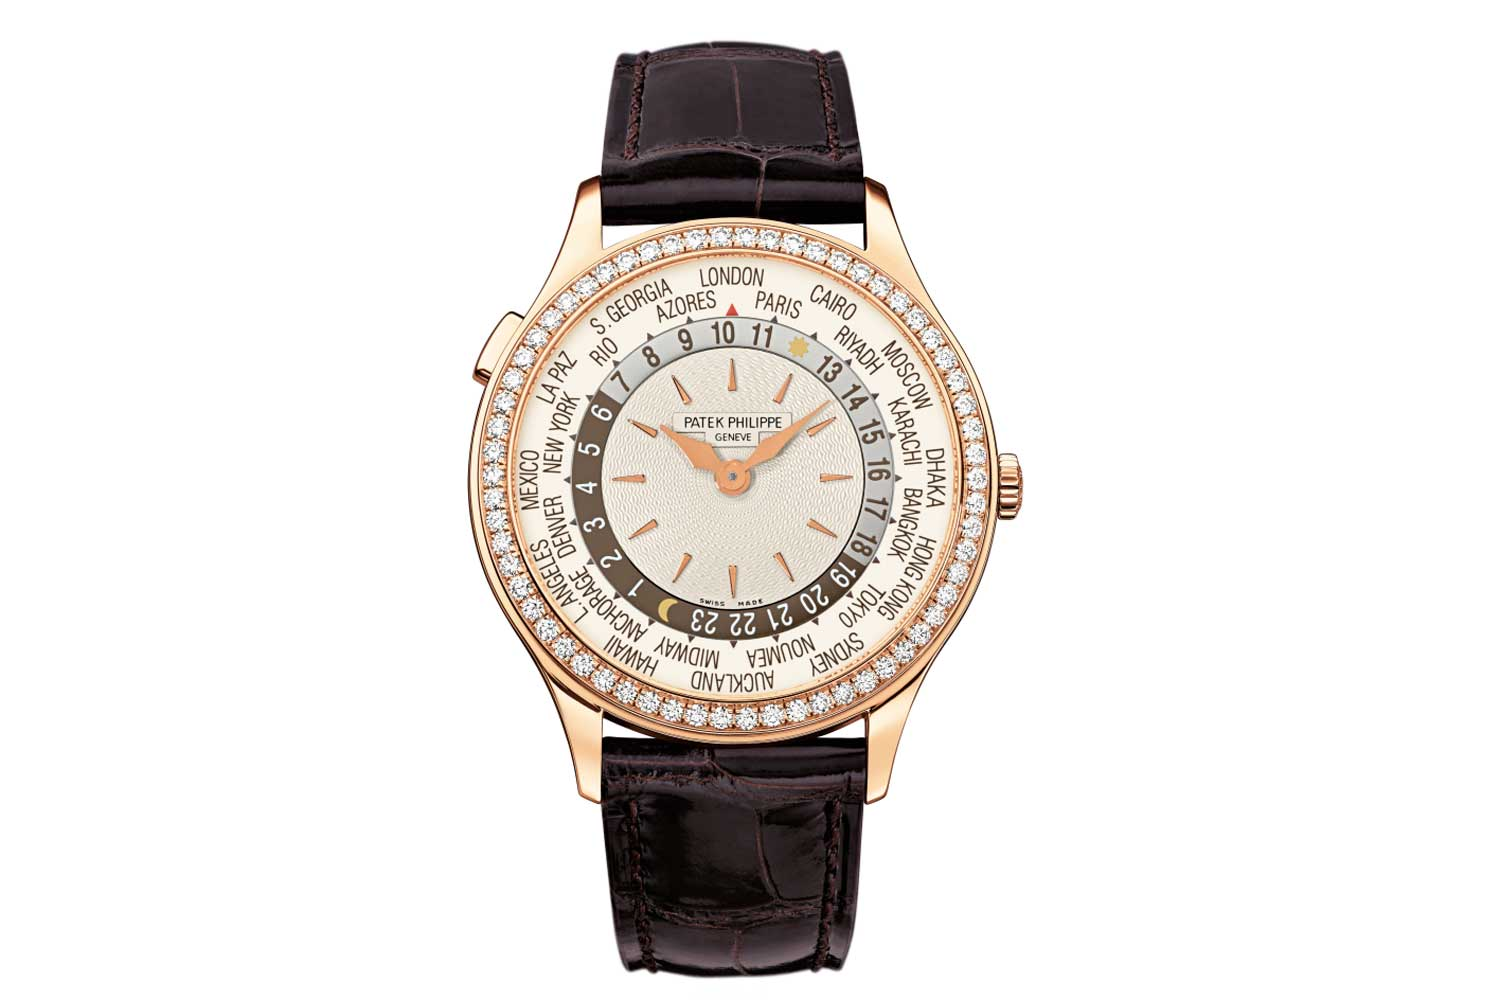 The first version of ref. 7130 with a rose gold case, an ivory hand-guilloché dial and a warm brown 24-hour ring and matching brown print on the city disk. (Image: Patek Philippe)